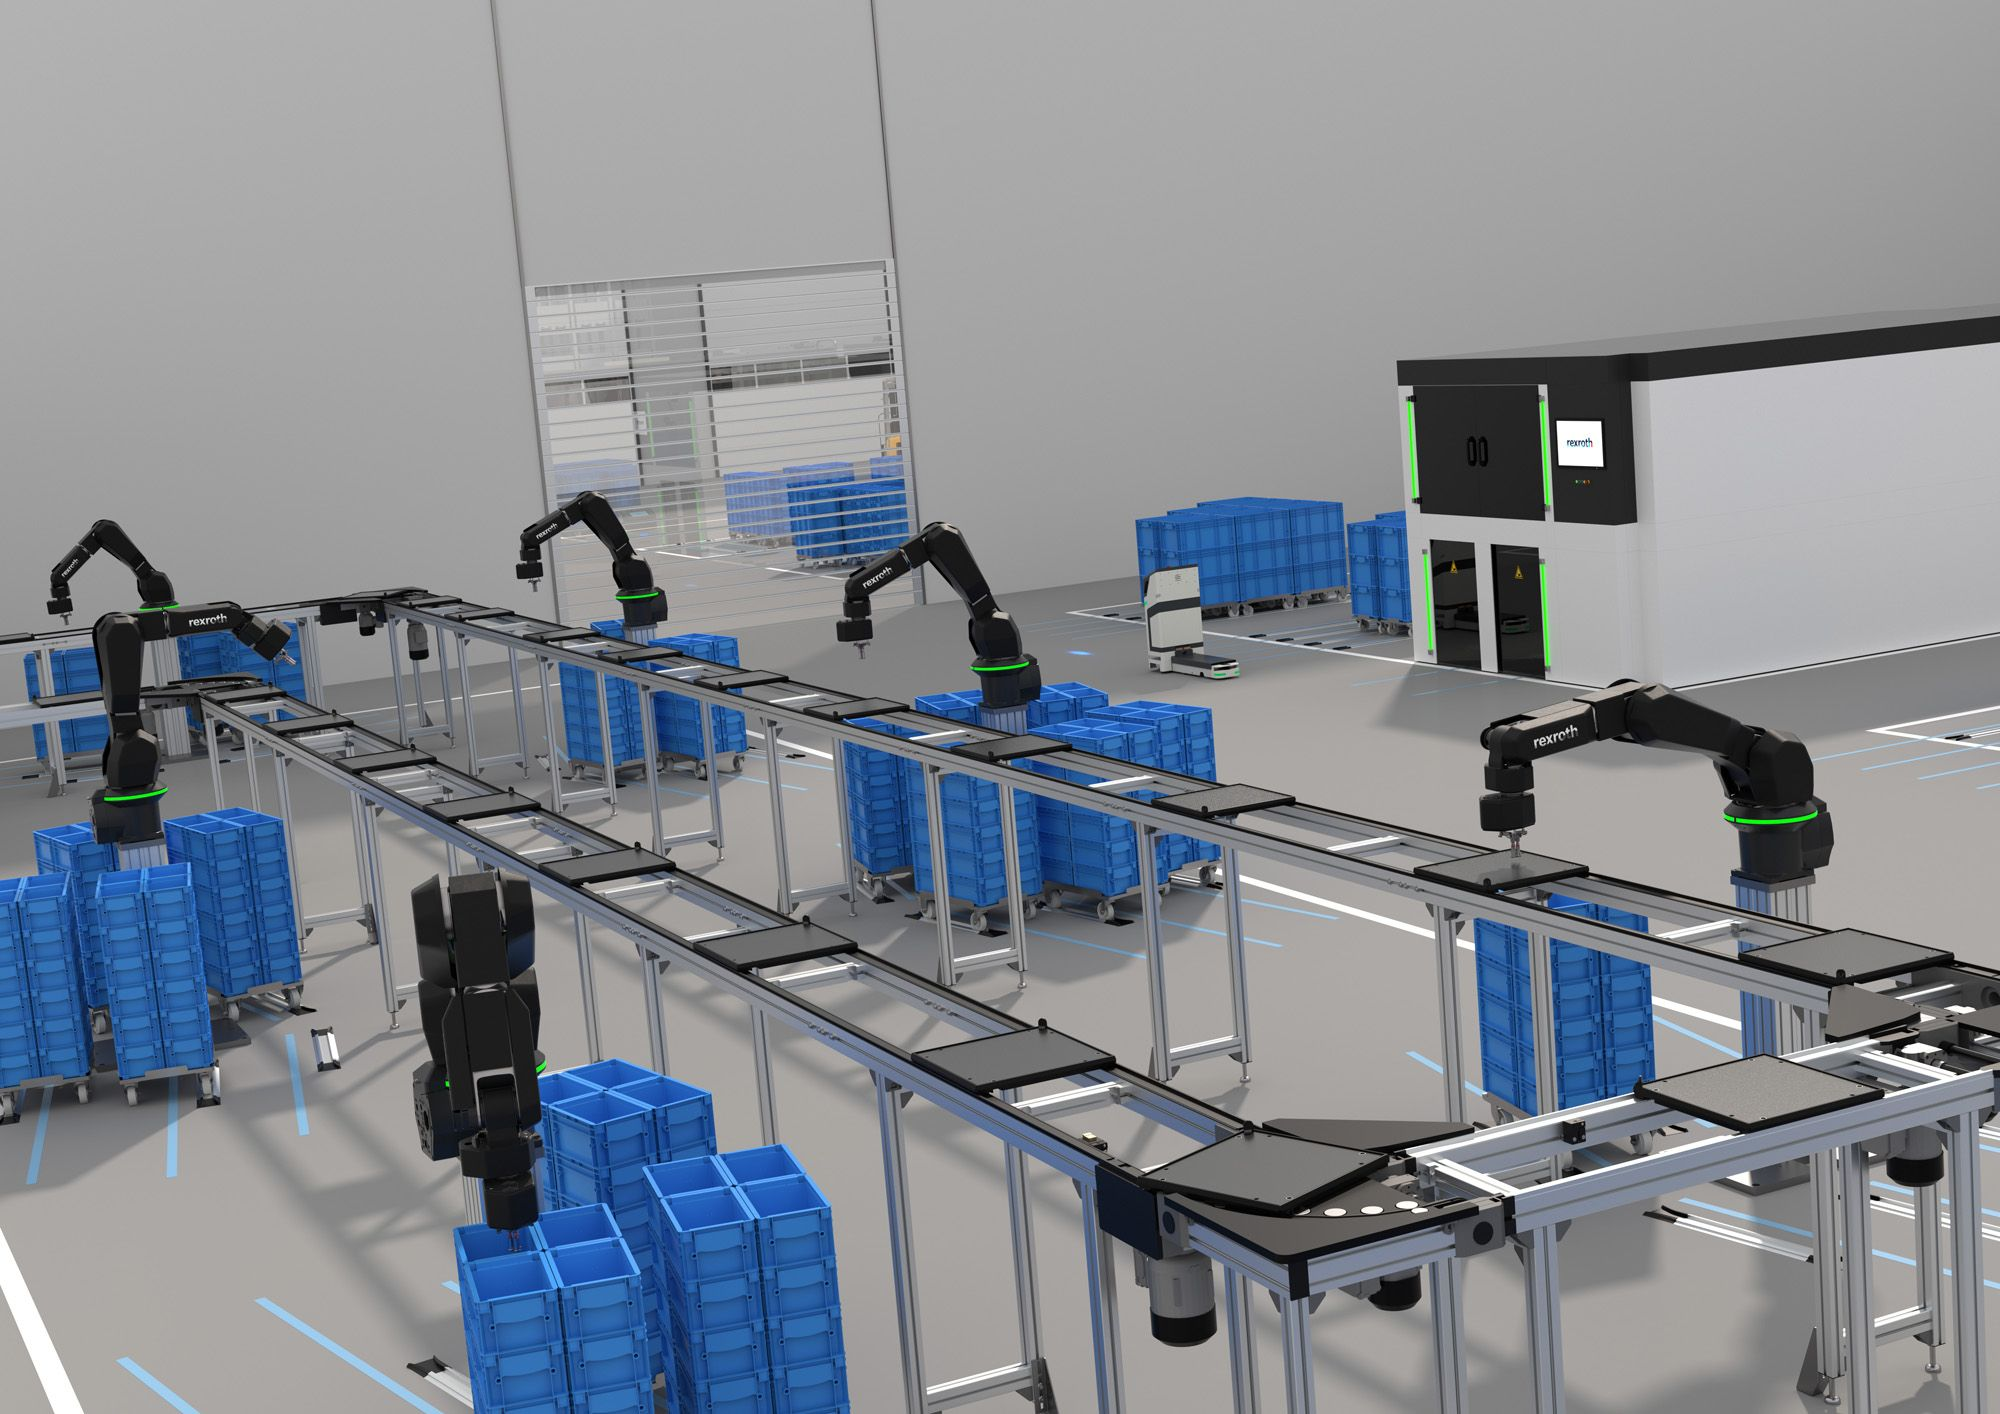 Higher-productivity packaging calls for a quicker cobot